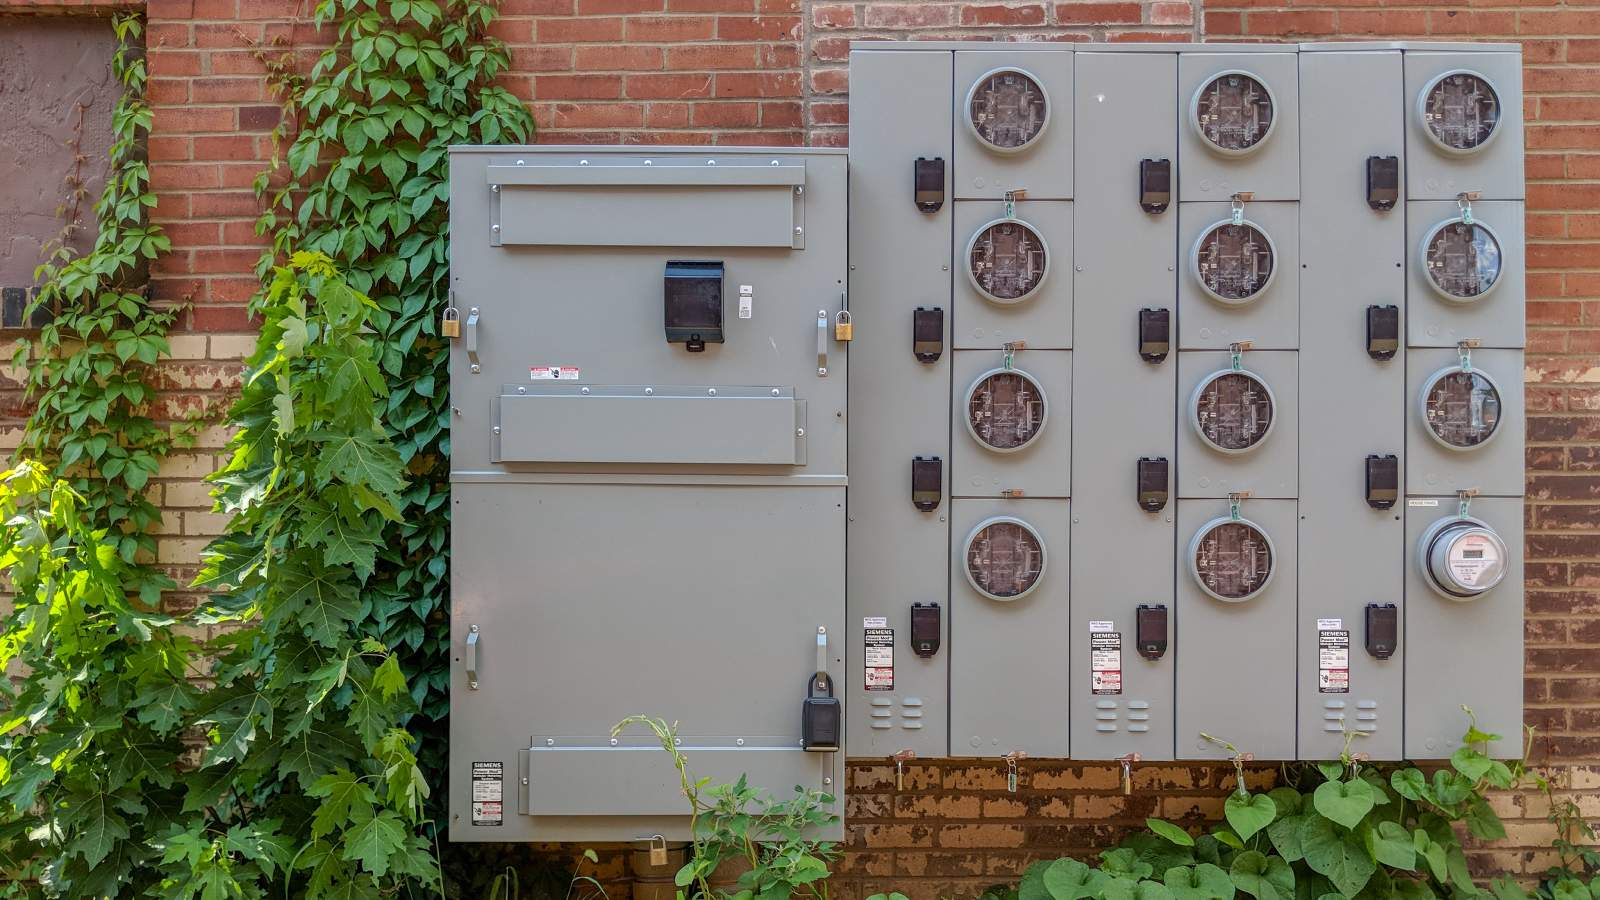 Utility Smart Meters May be Leaving Consumer Information